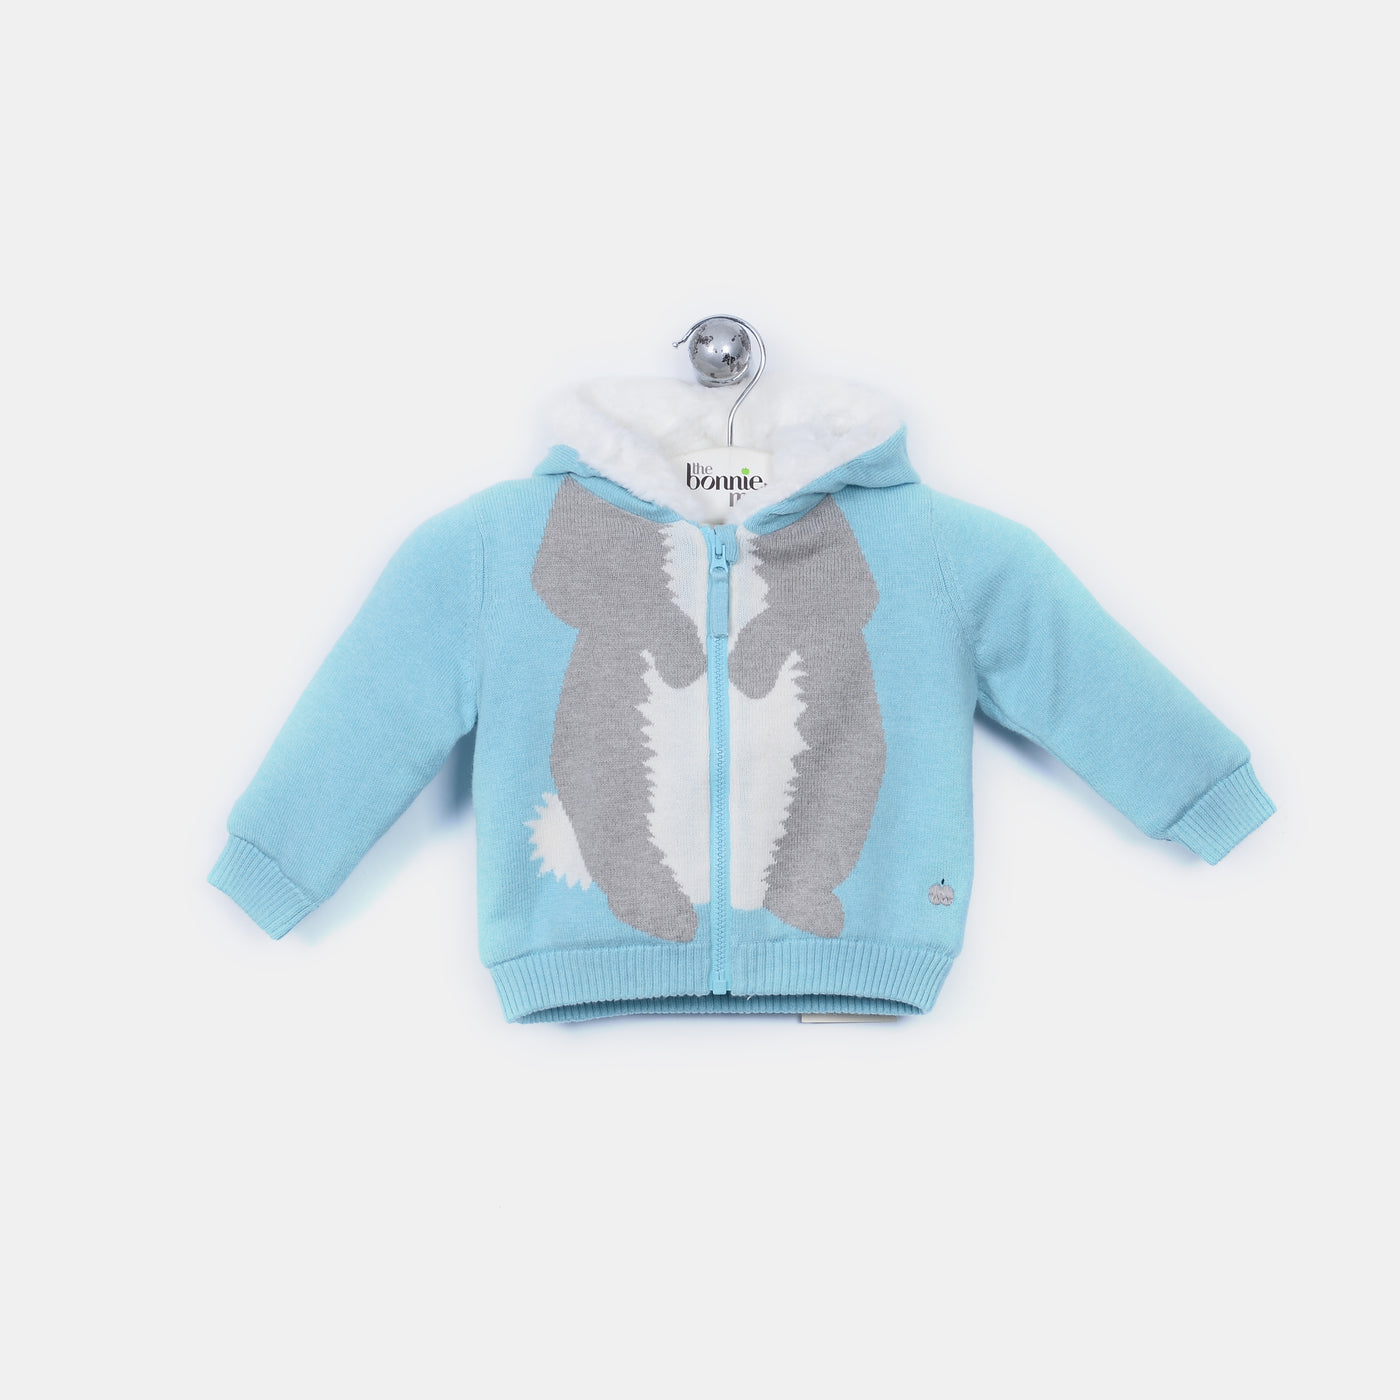 L-DOMINO - Bunny Body Hooded Lined Jacket - Kids Boy - Surf